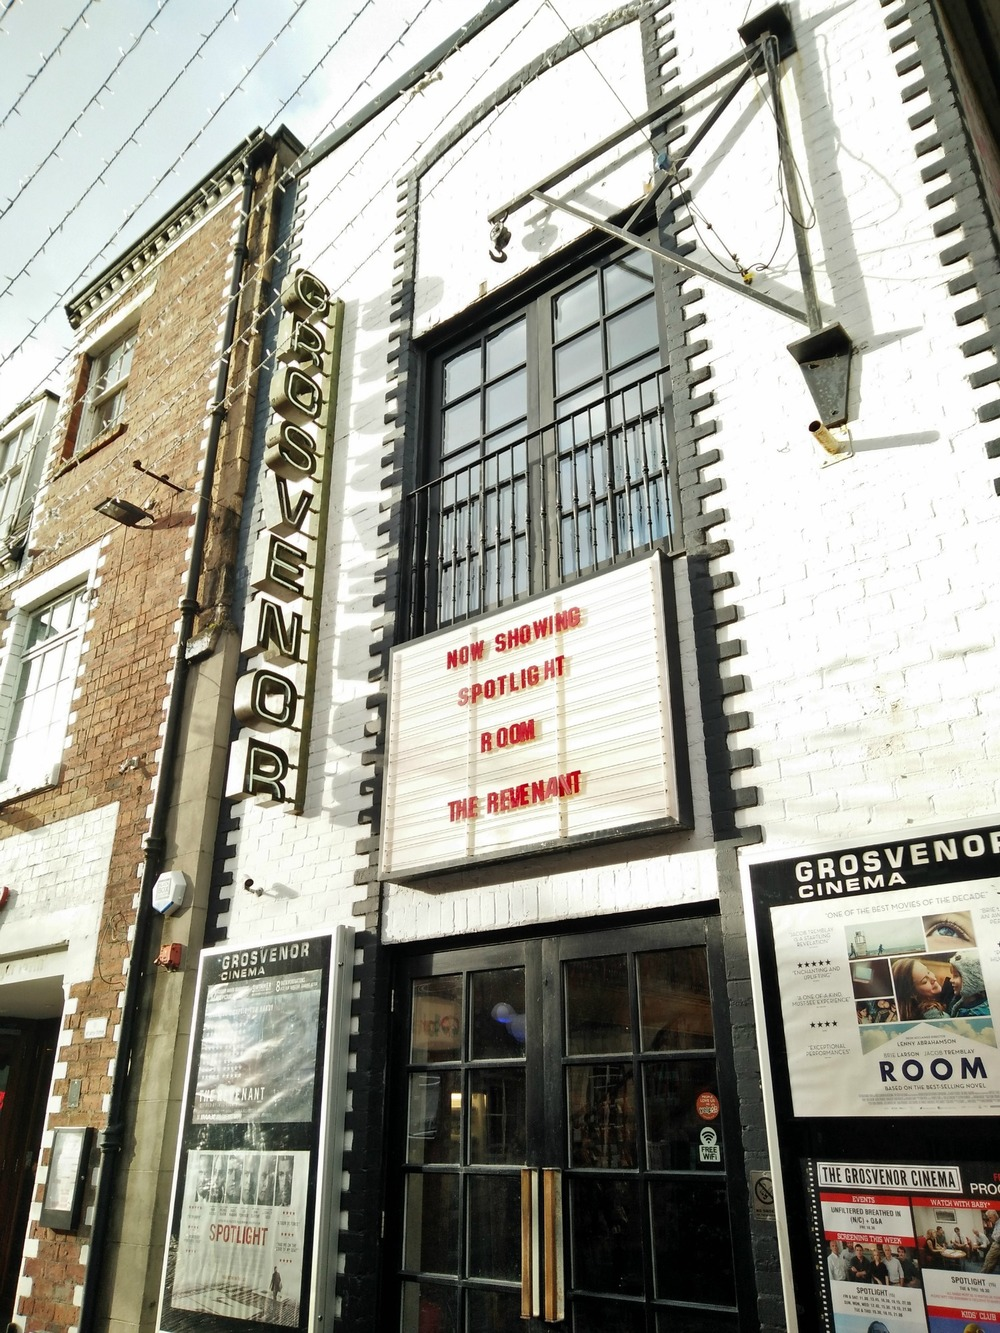 The Grosvenor Cinema